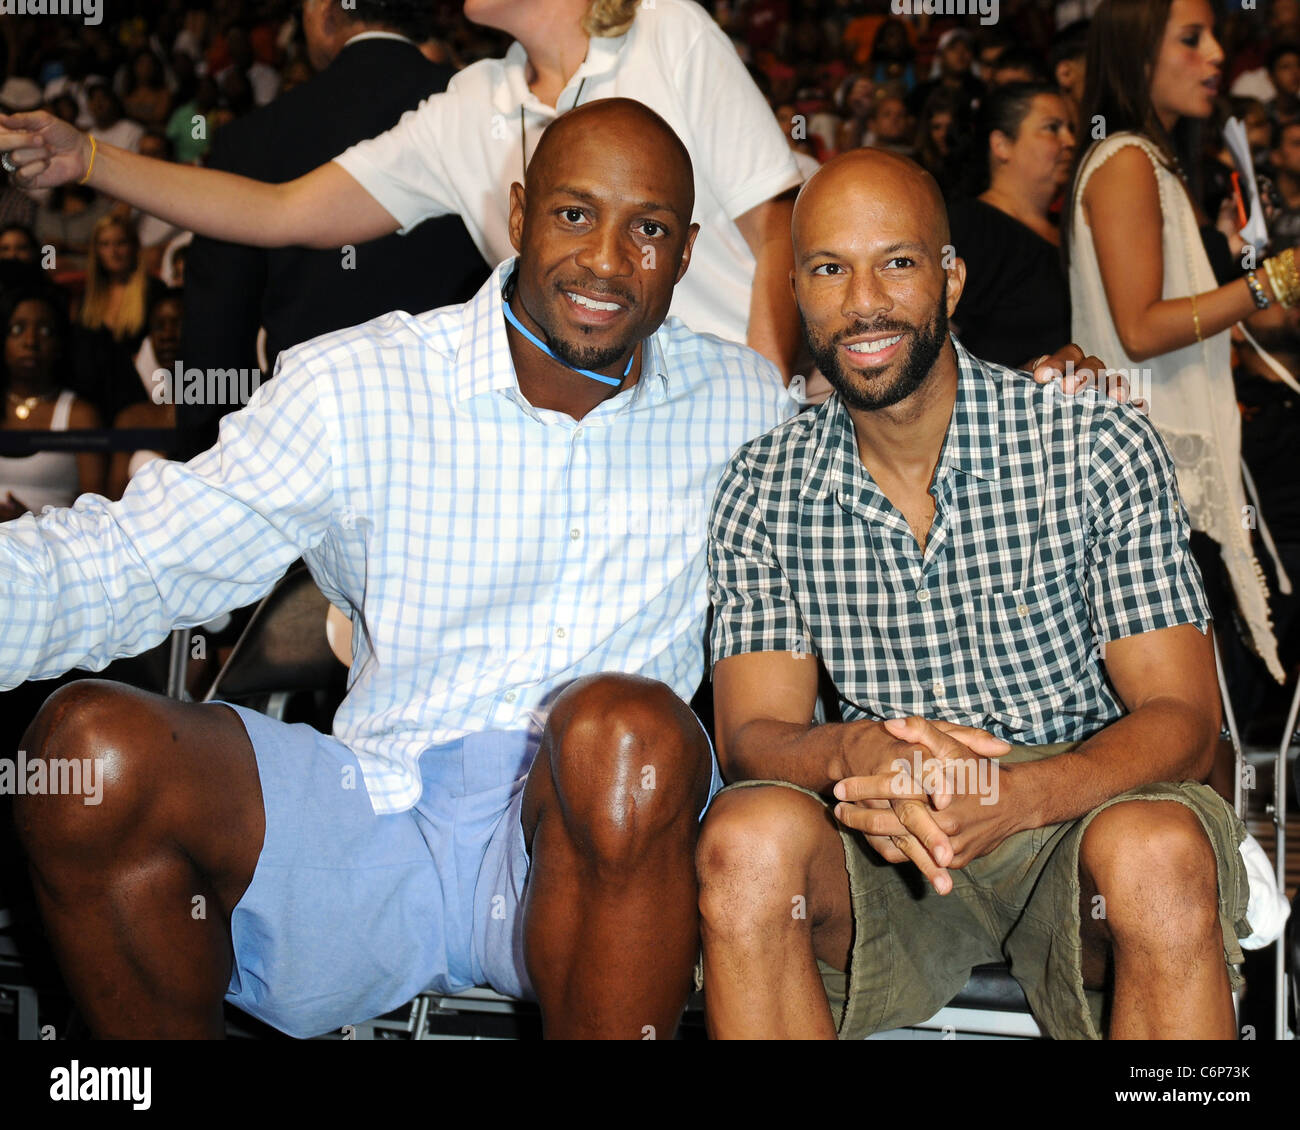 Alonzo Mourning and mon appear at the Zo s Summer Groove